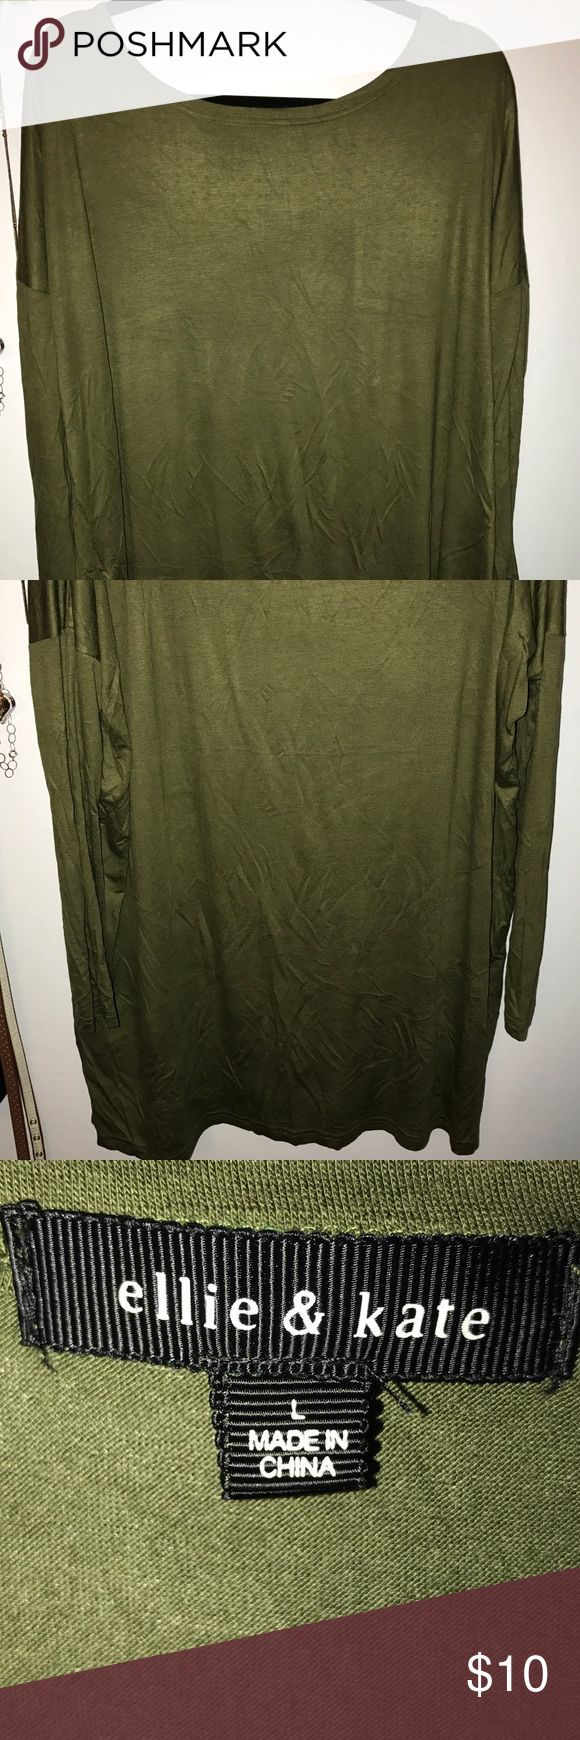 Green Long Sleeve Top - Ellie & Kate Brand Green Long Sleeve Top - can be considered a Tunic - never worn Ellie & Kate Tops